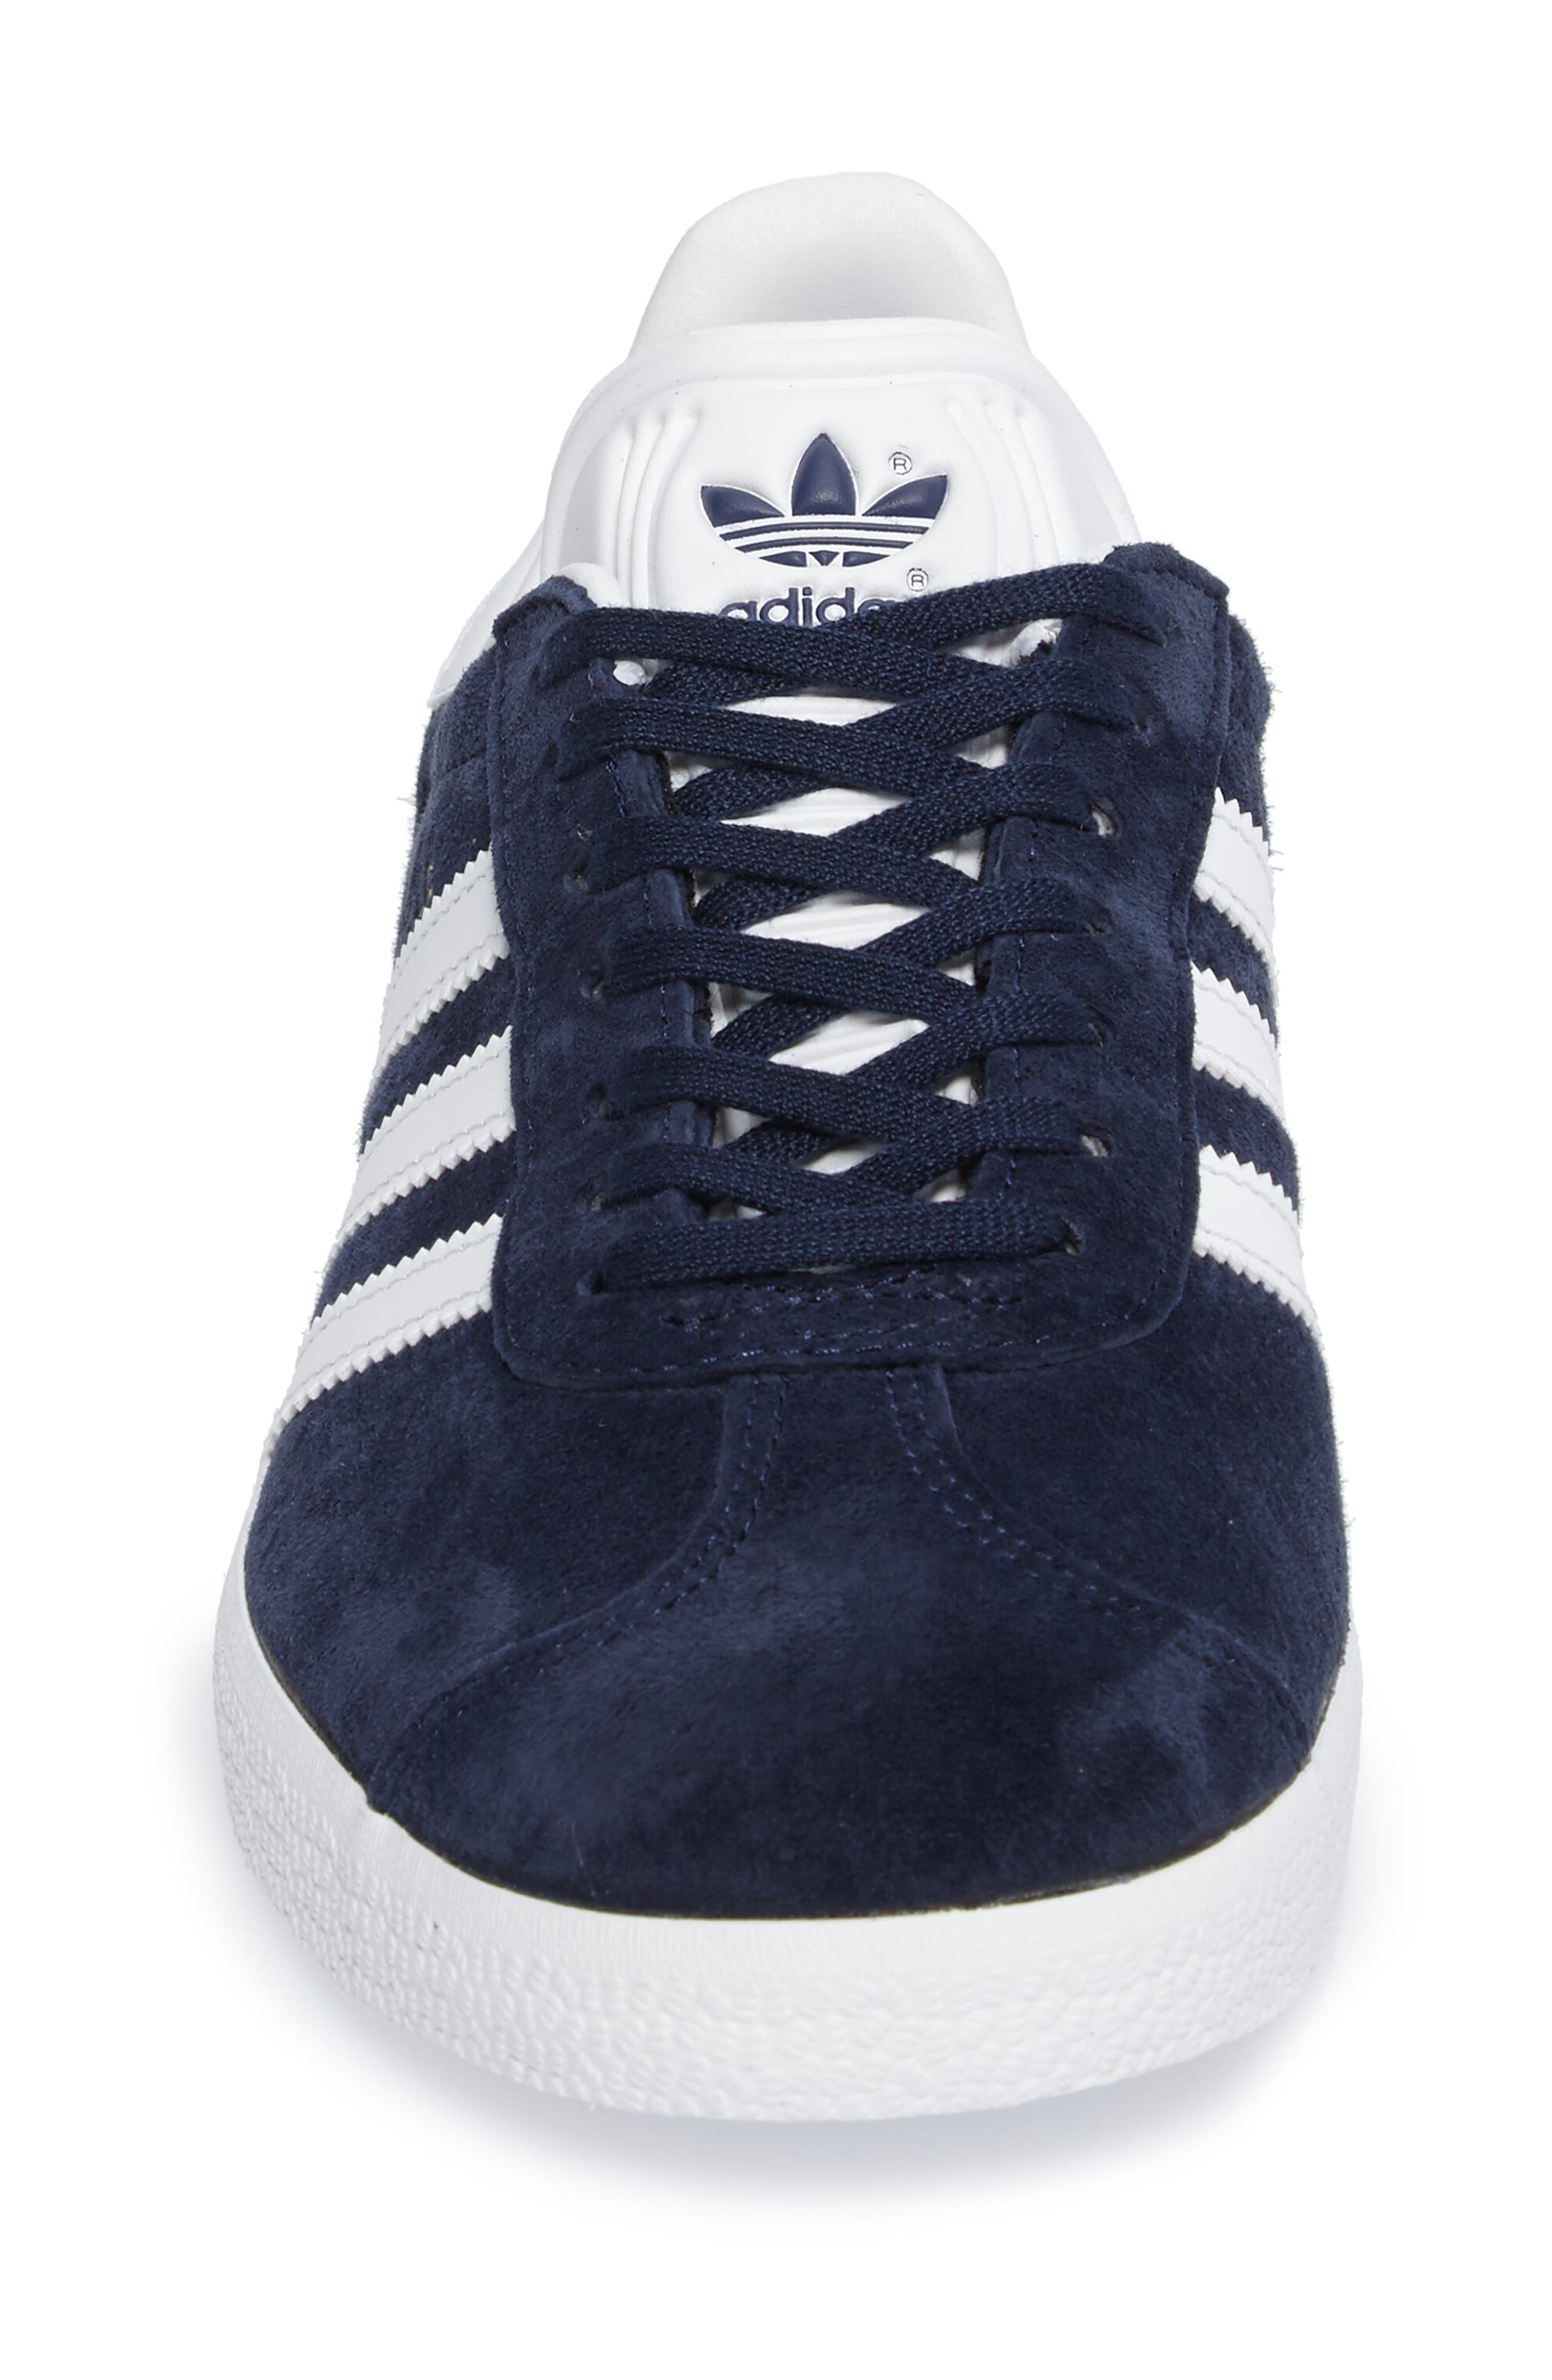 Gazelle Sneaker,                             Alternate thumbnail 4, color,                             Navy/ White/ Gold Metallic